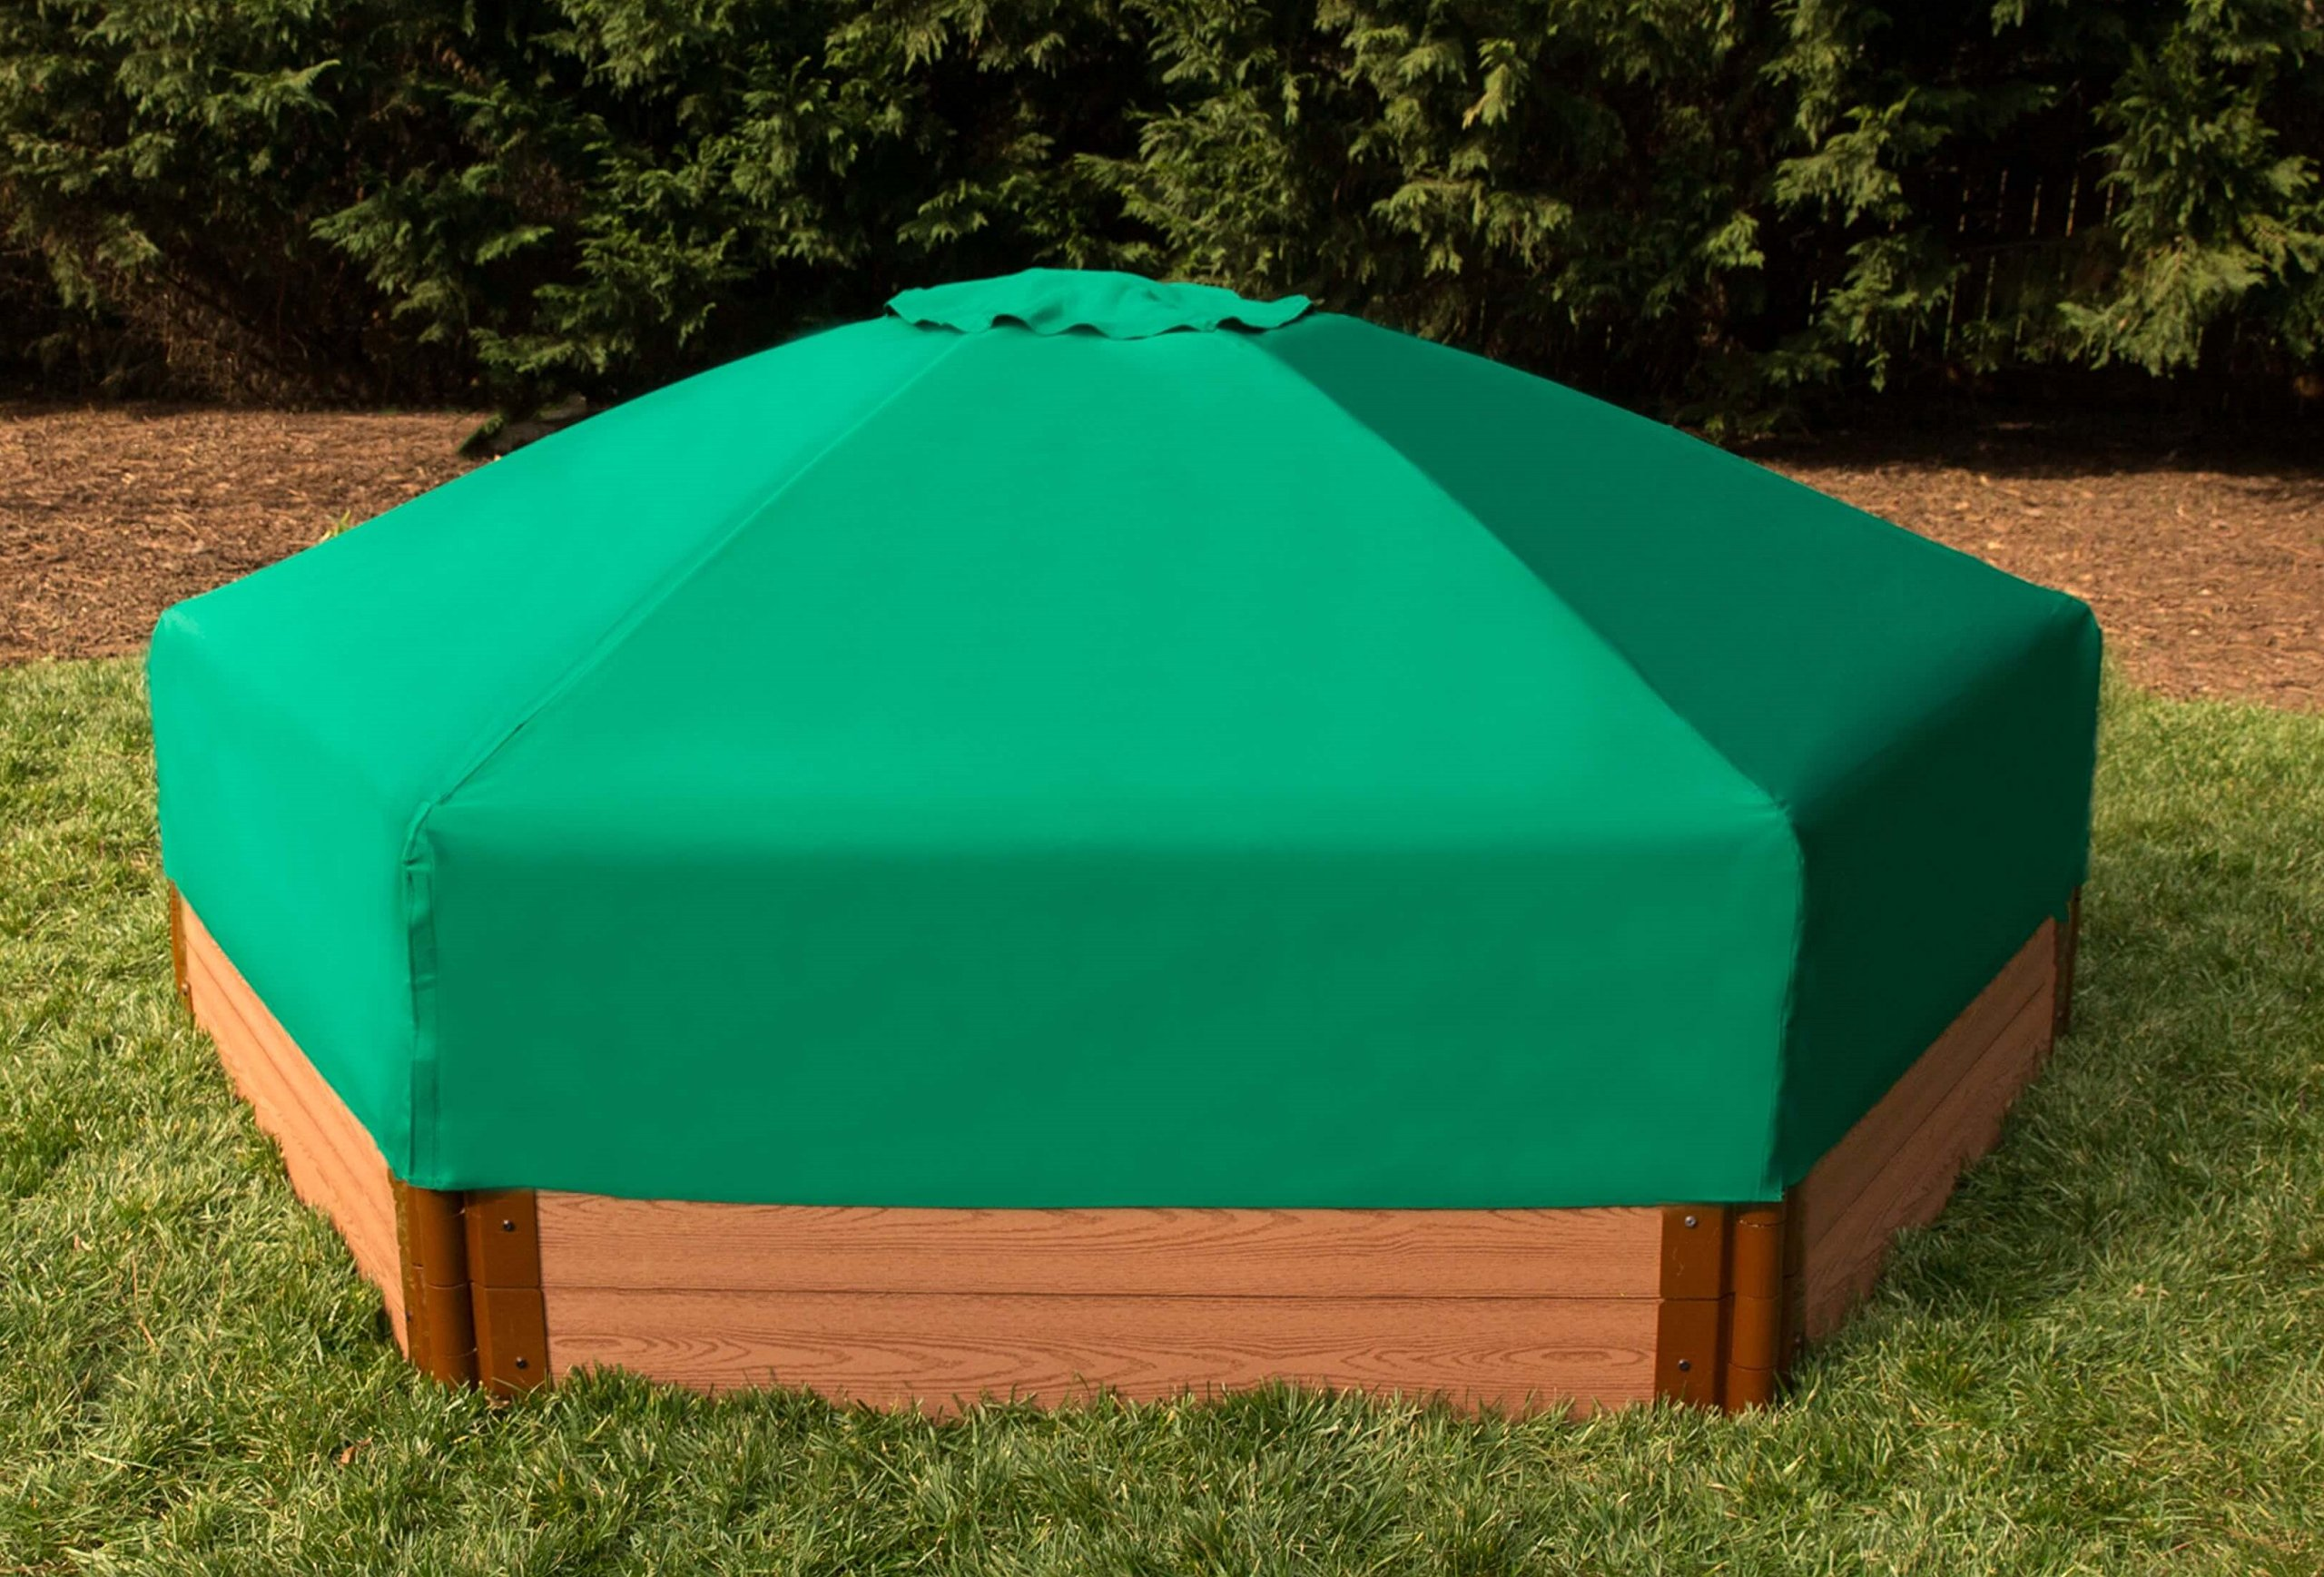 Frame It All 300001508 Hexagonal Collapsible Sandbox Cover, 7' x 8' x 13.5'' by Frame It All (Image #3)